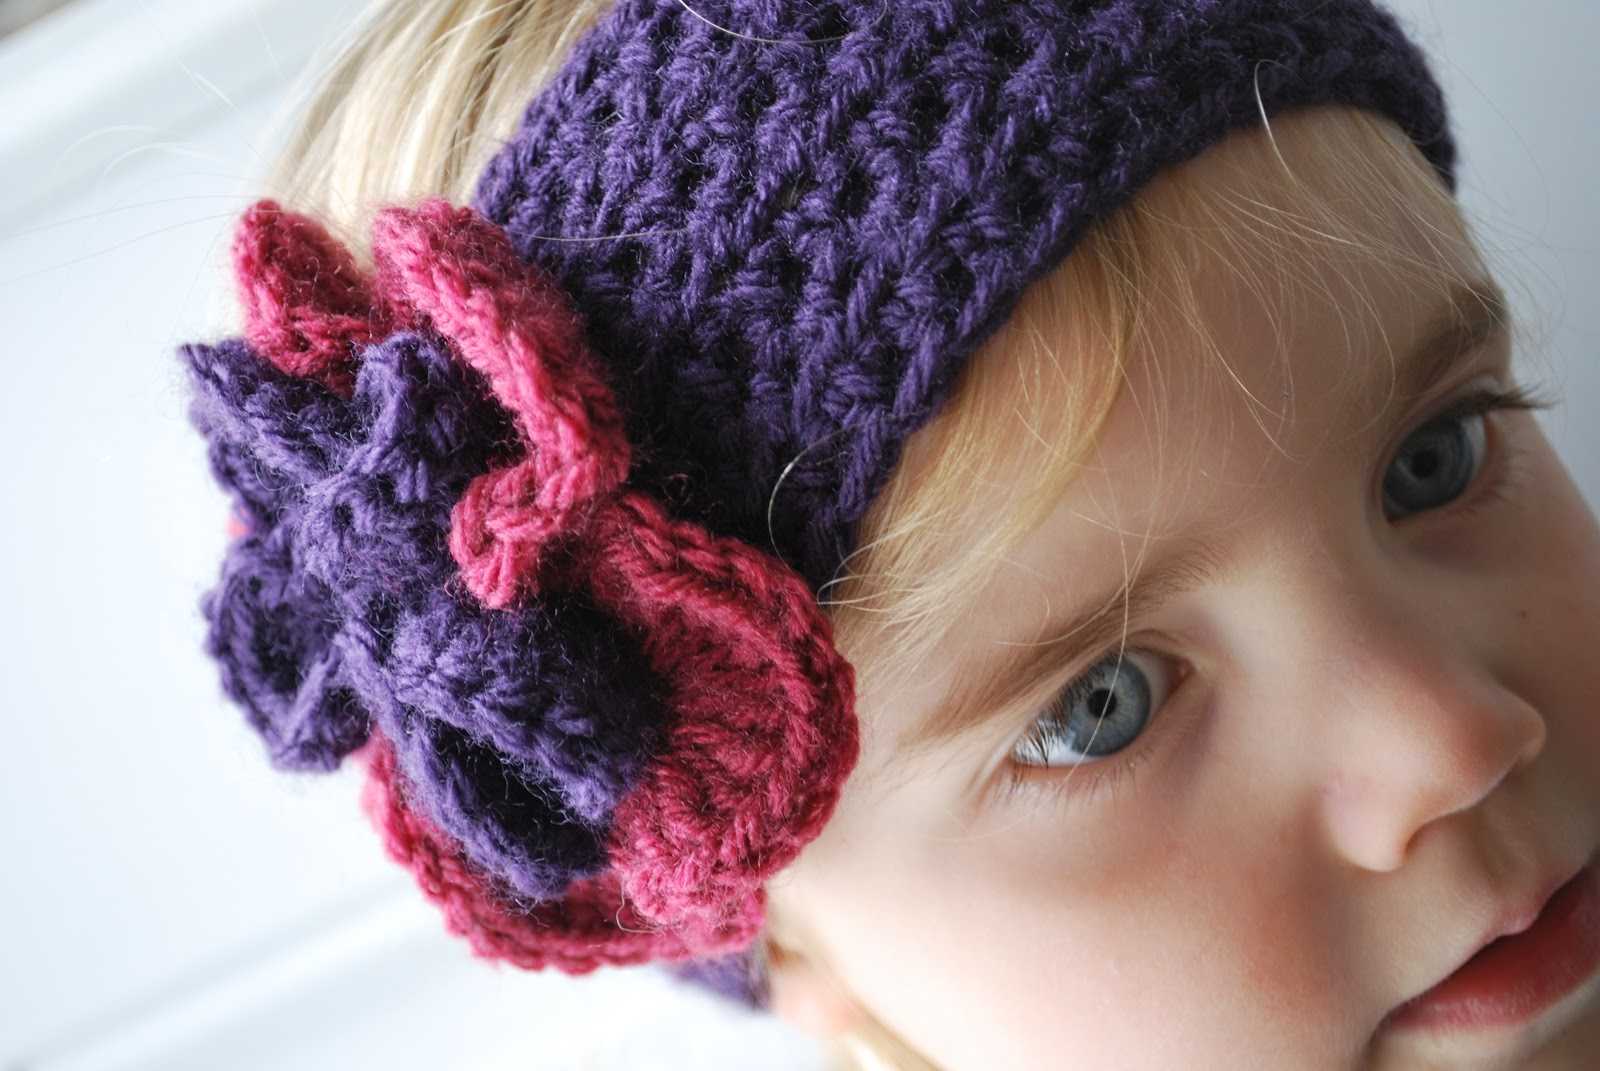 Crochet Wide Headband With Flower Free Pattern : Knit Or Crochet Headband Patterns submited images Pic2Fly